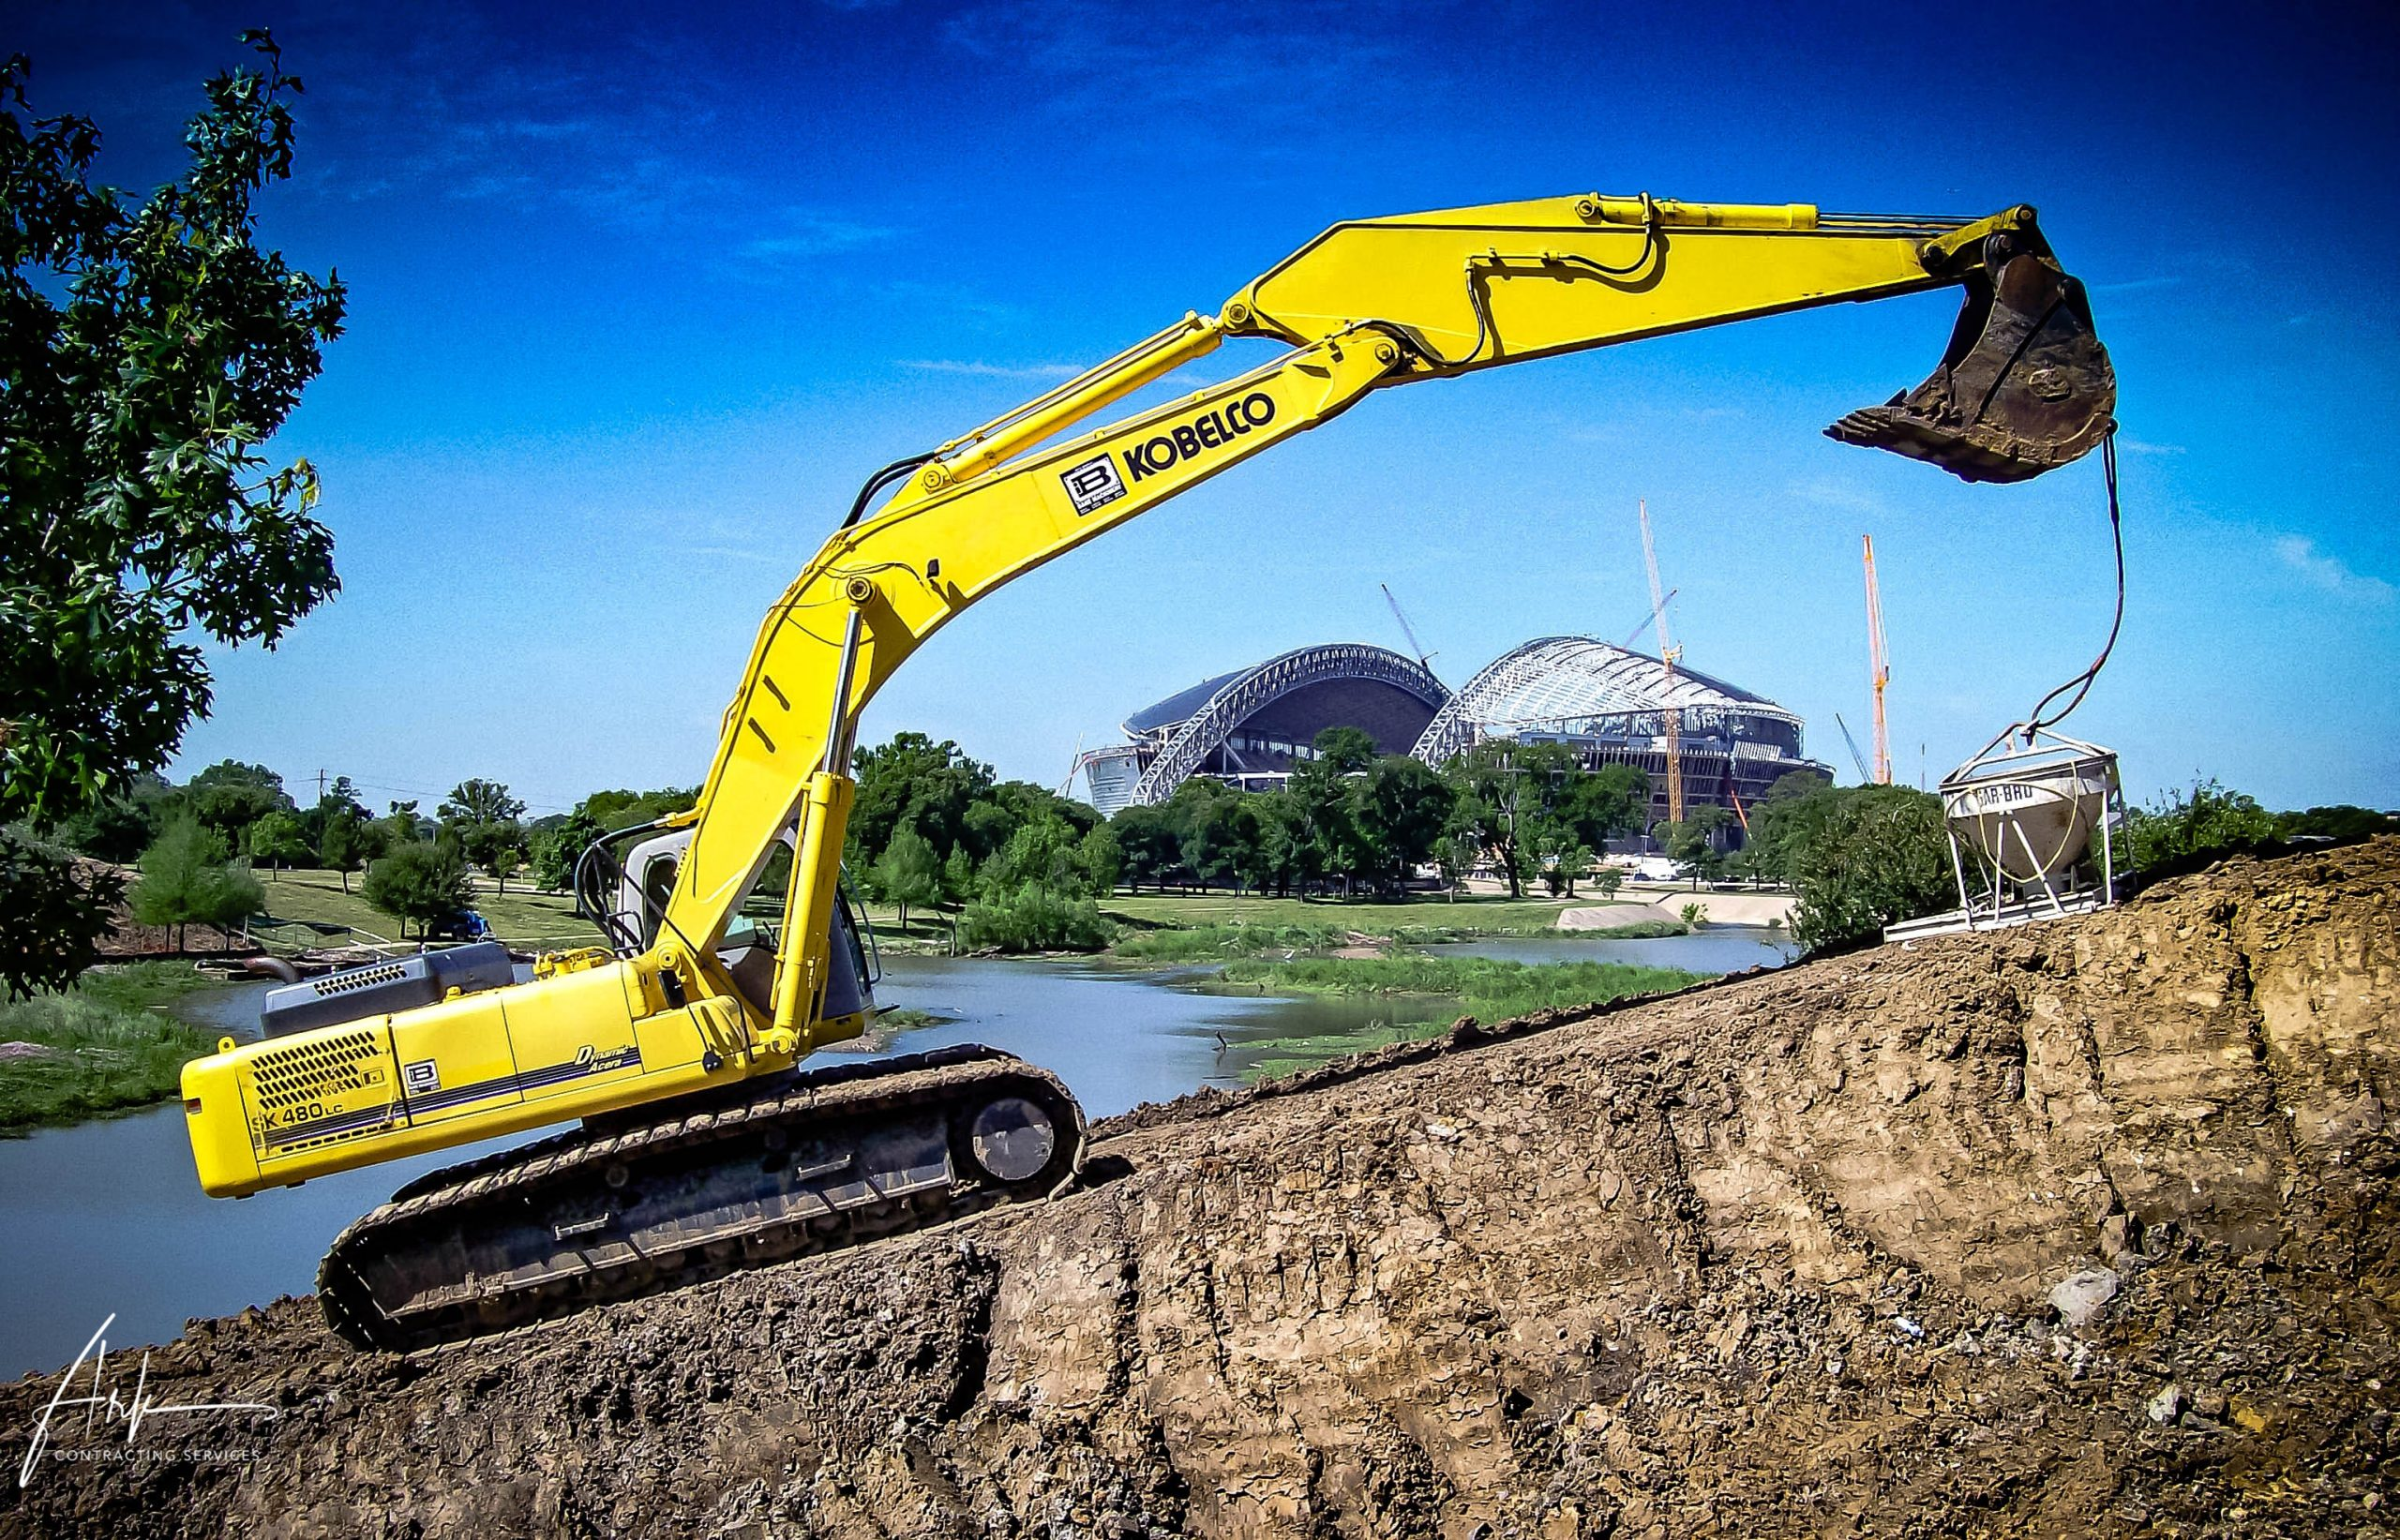 Johnson Creek excavation, an environmental project done by Ark Contracting Services LLC for the city of Ft. Worth, TX.